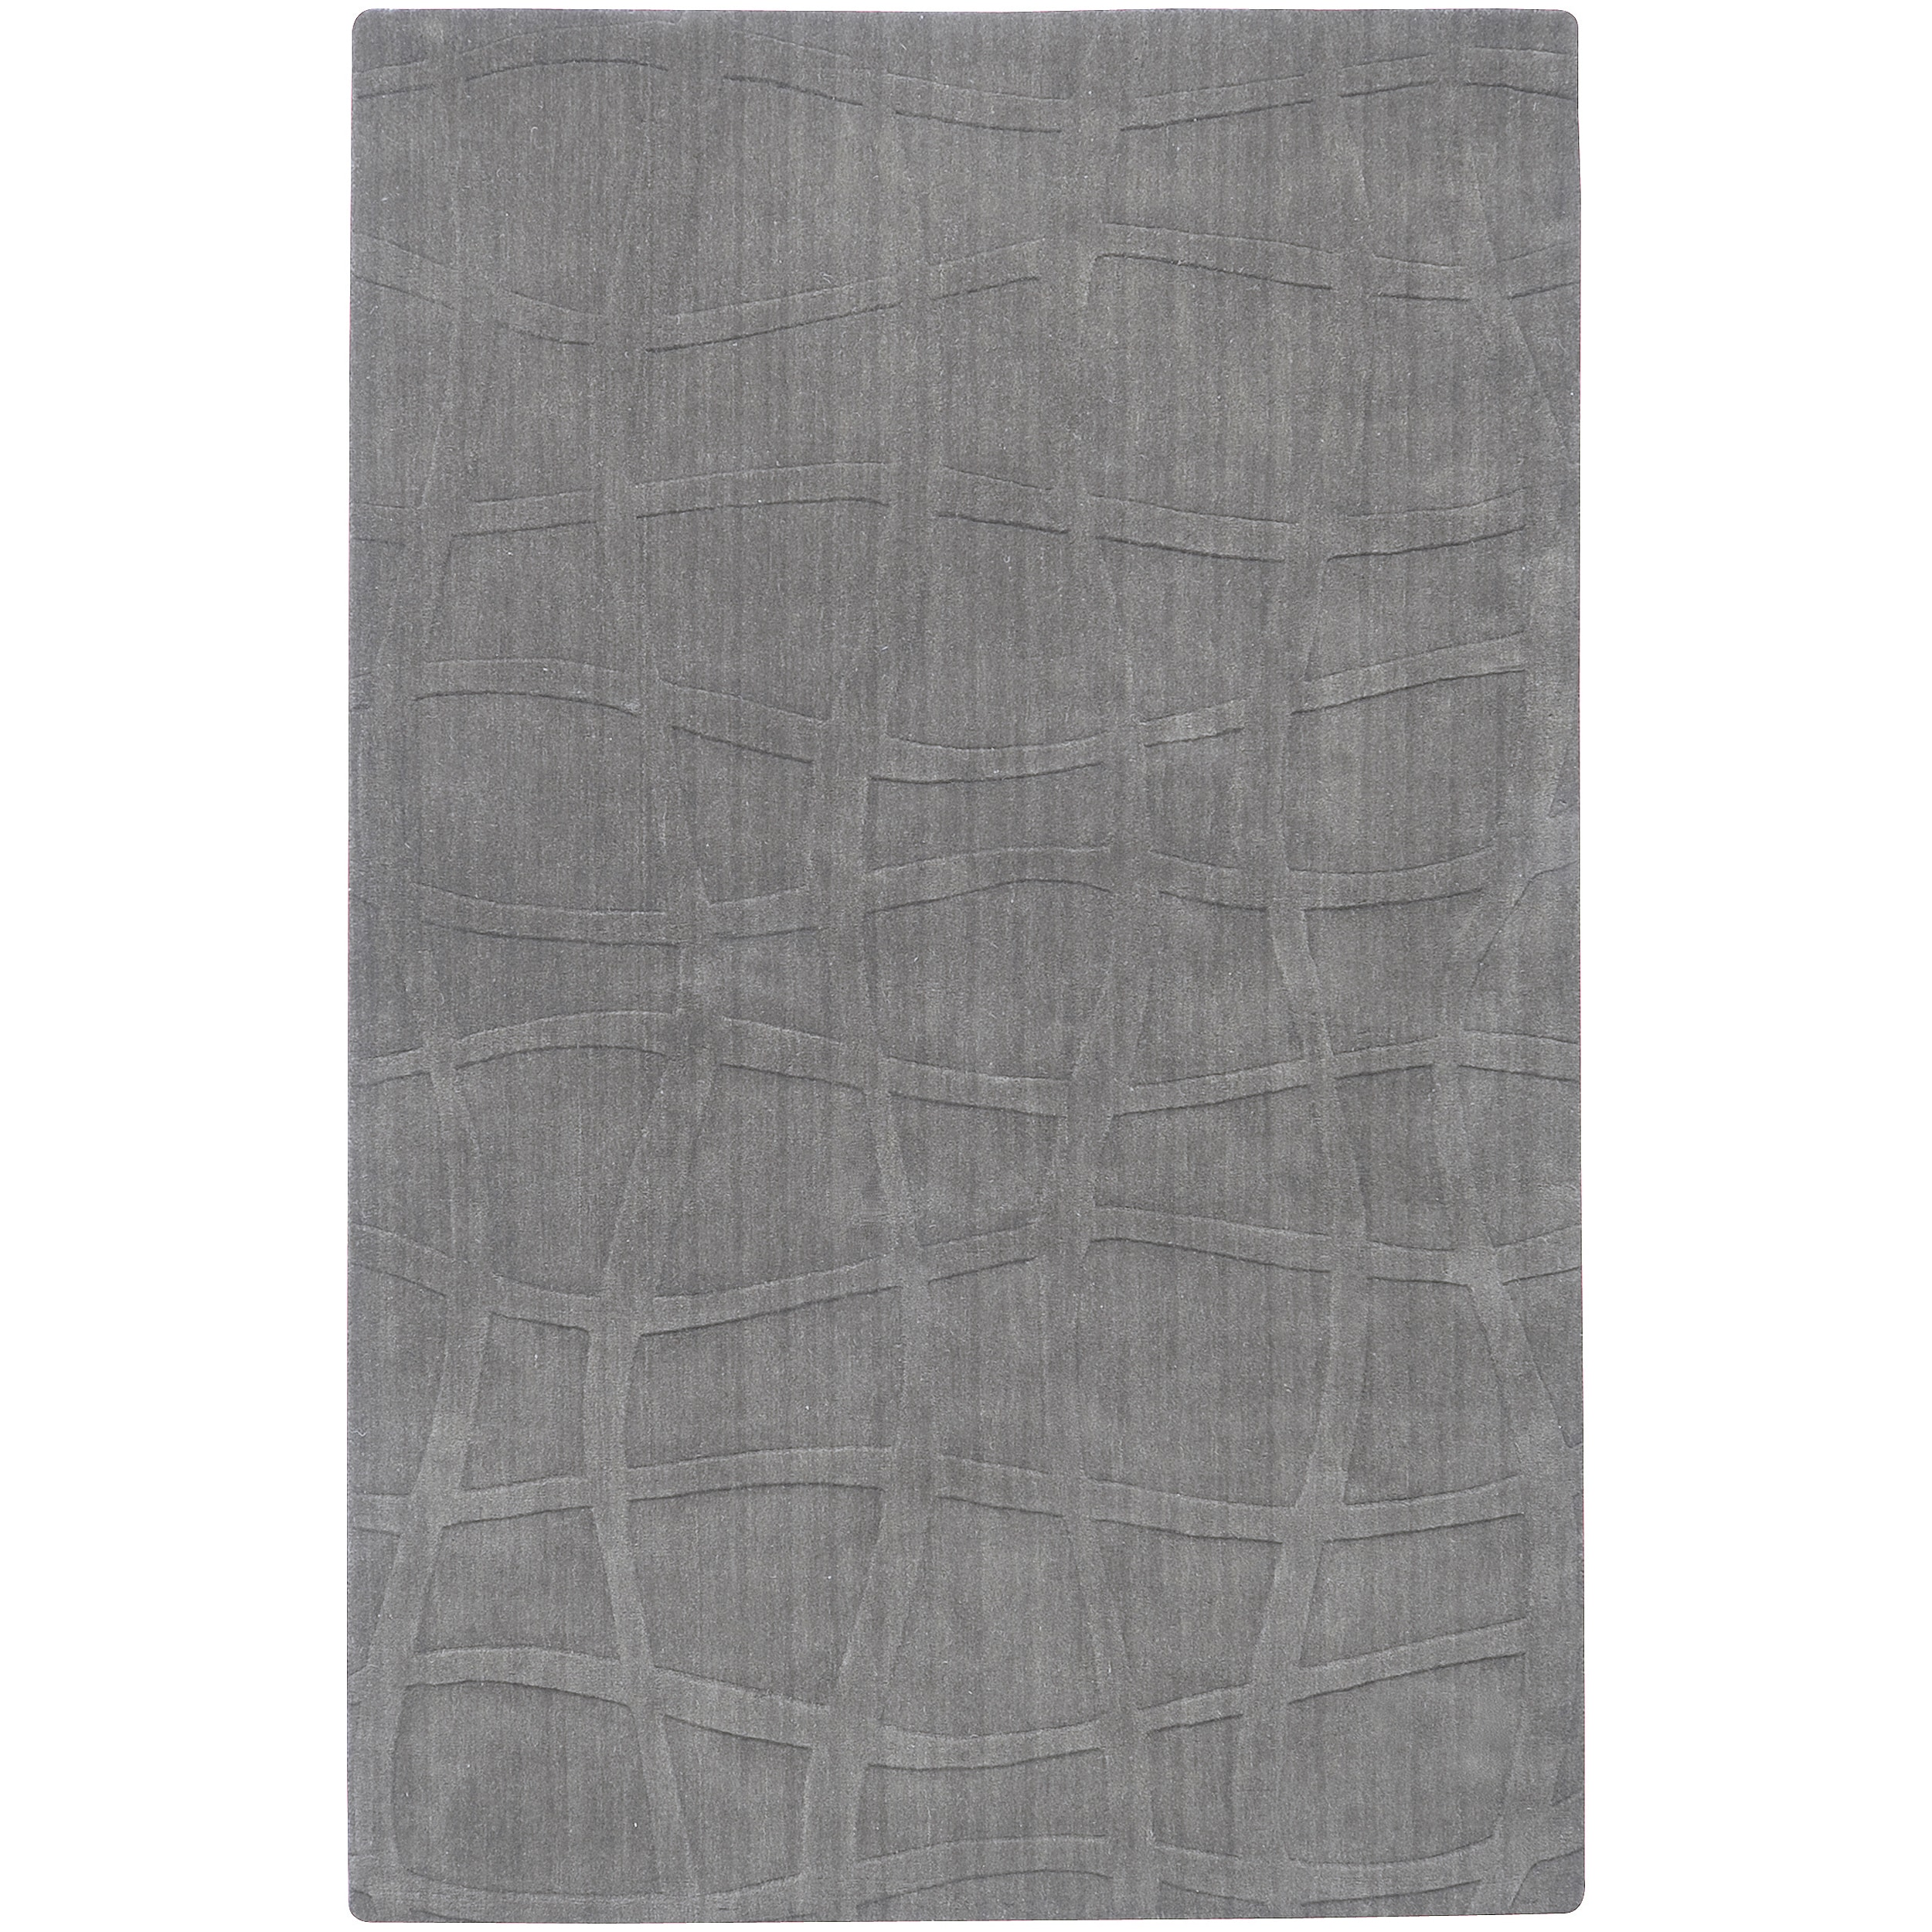 Candice Olson Loomed Gray Ichoa Abstract Plush Wool Rug (8' x 11')